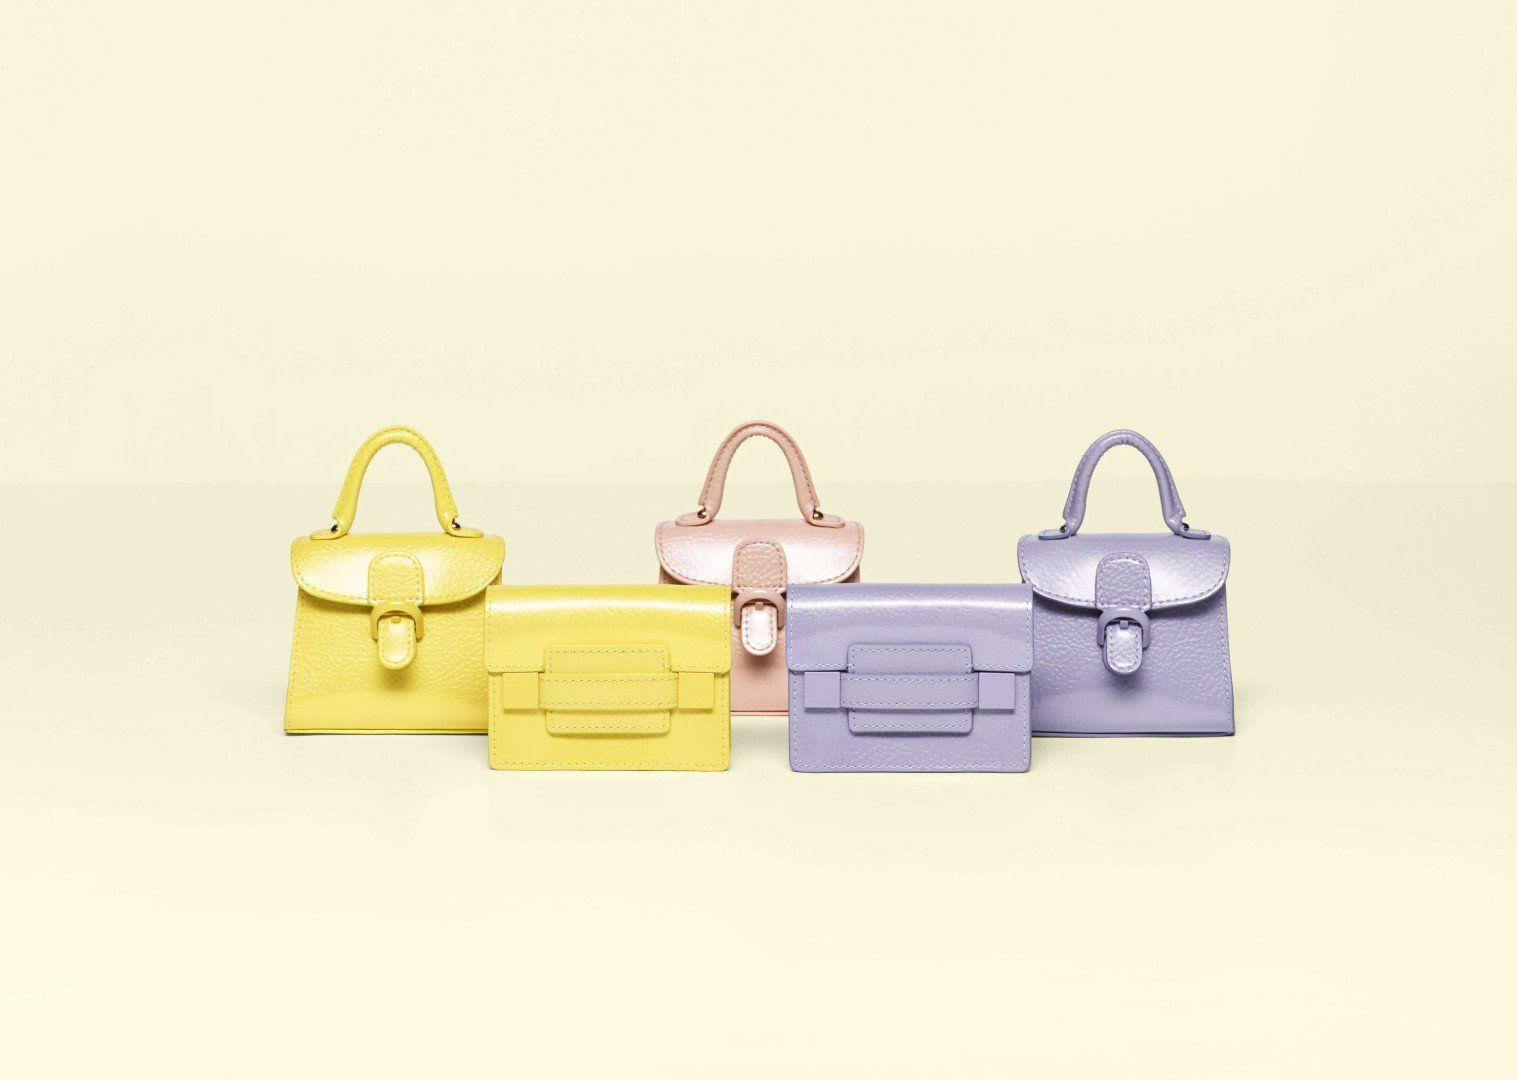 67bfdd6525 The incredible shrinking handbag  what you can and can t fit in a nano bag  and why anyone might want one